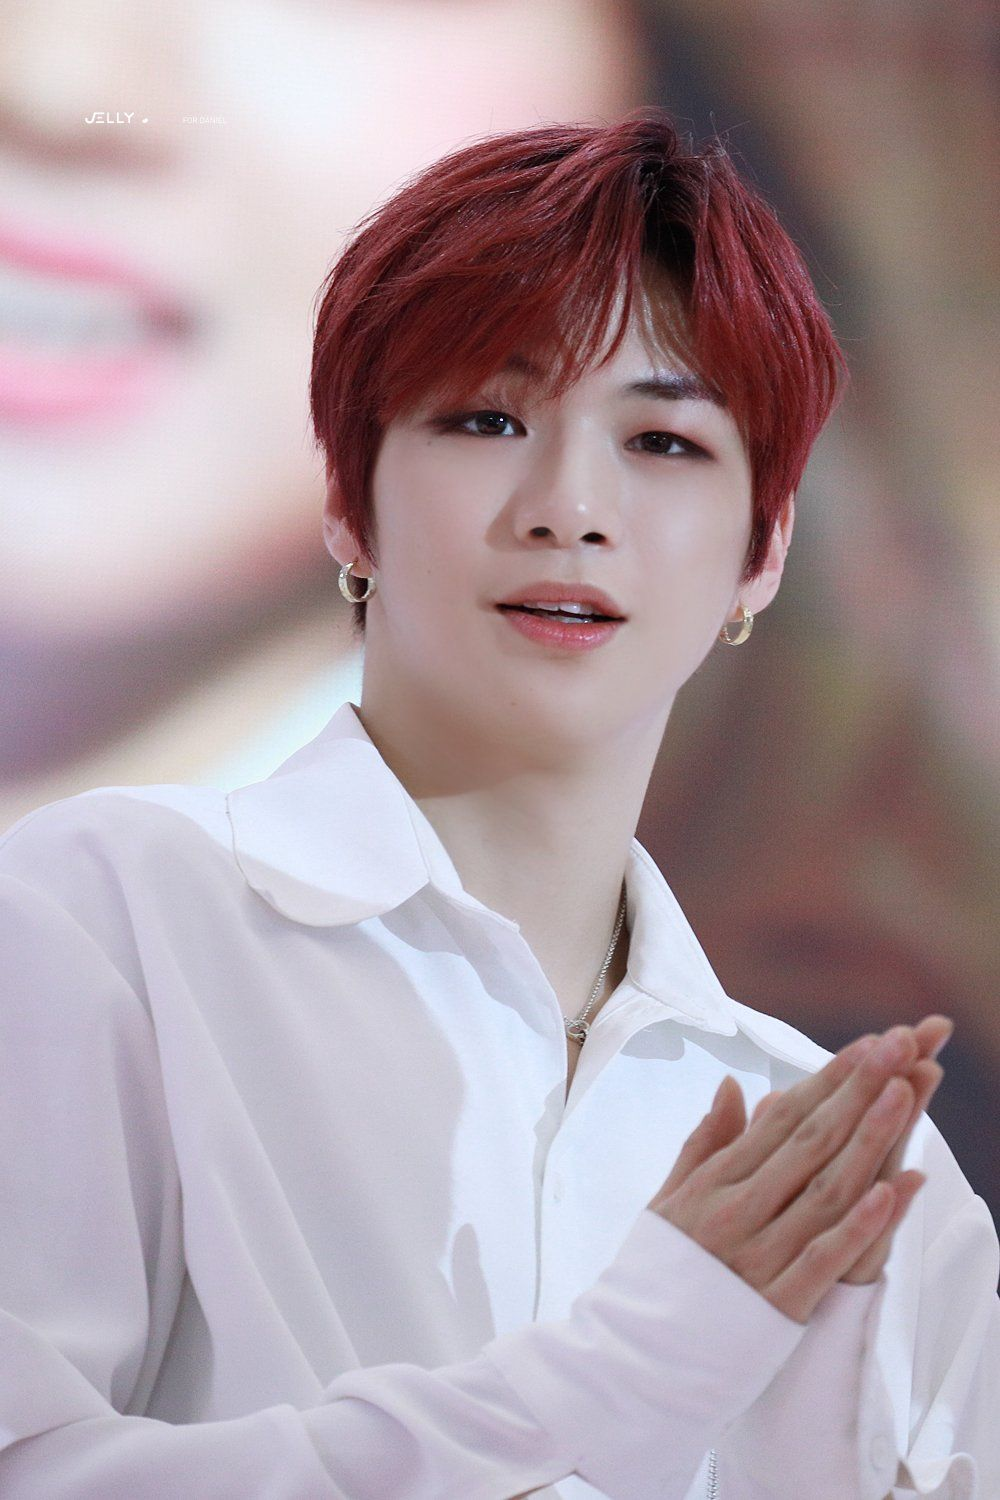 """JELLY on Twitter: """"181210 MAMA #강다니엘… """""""